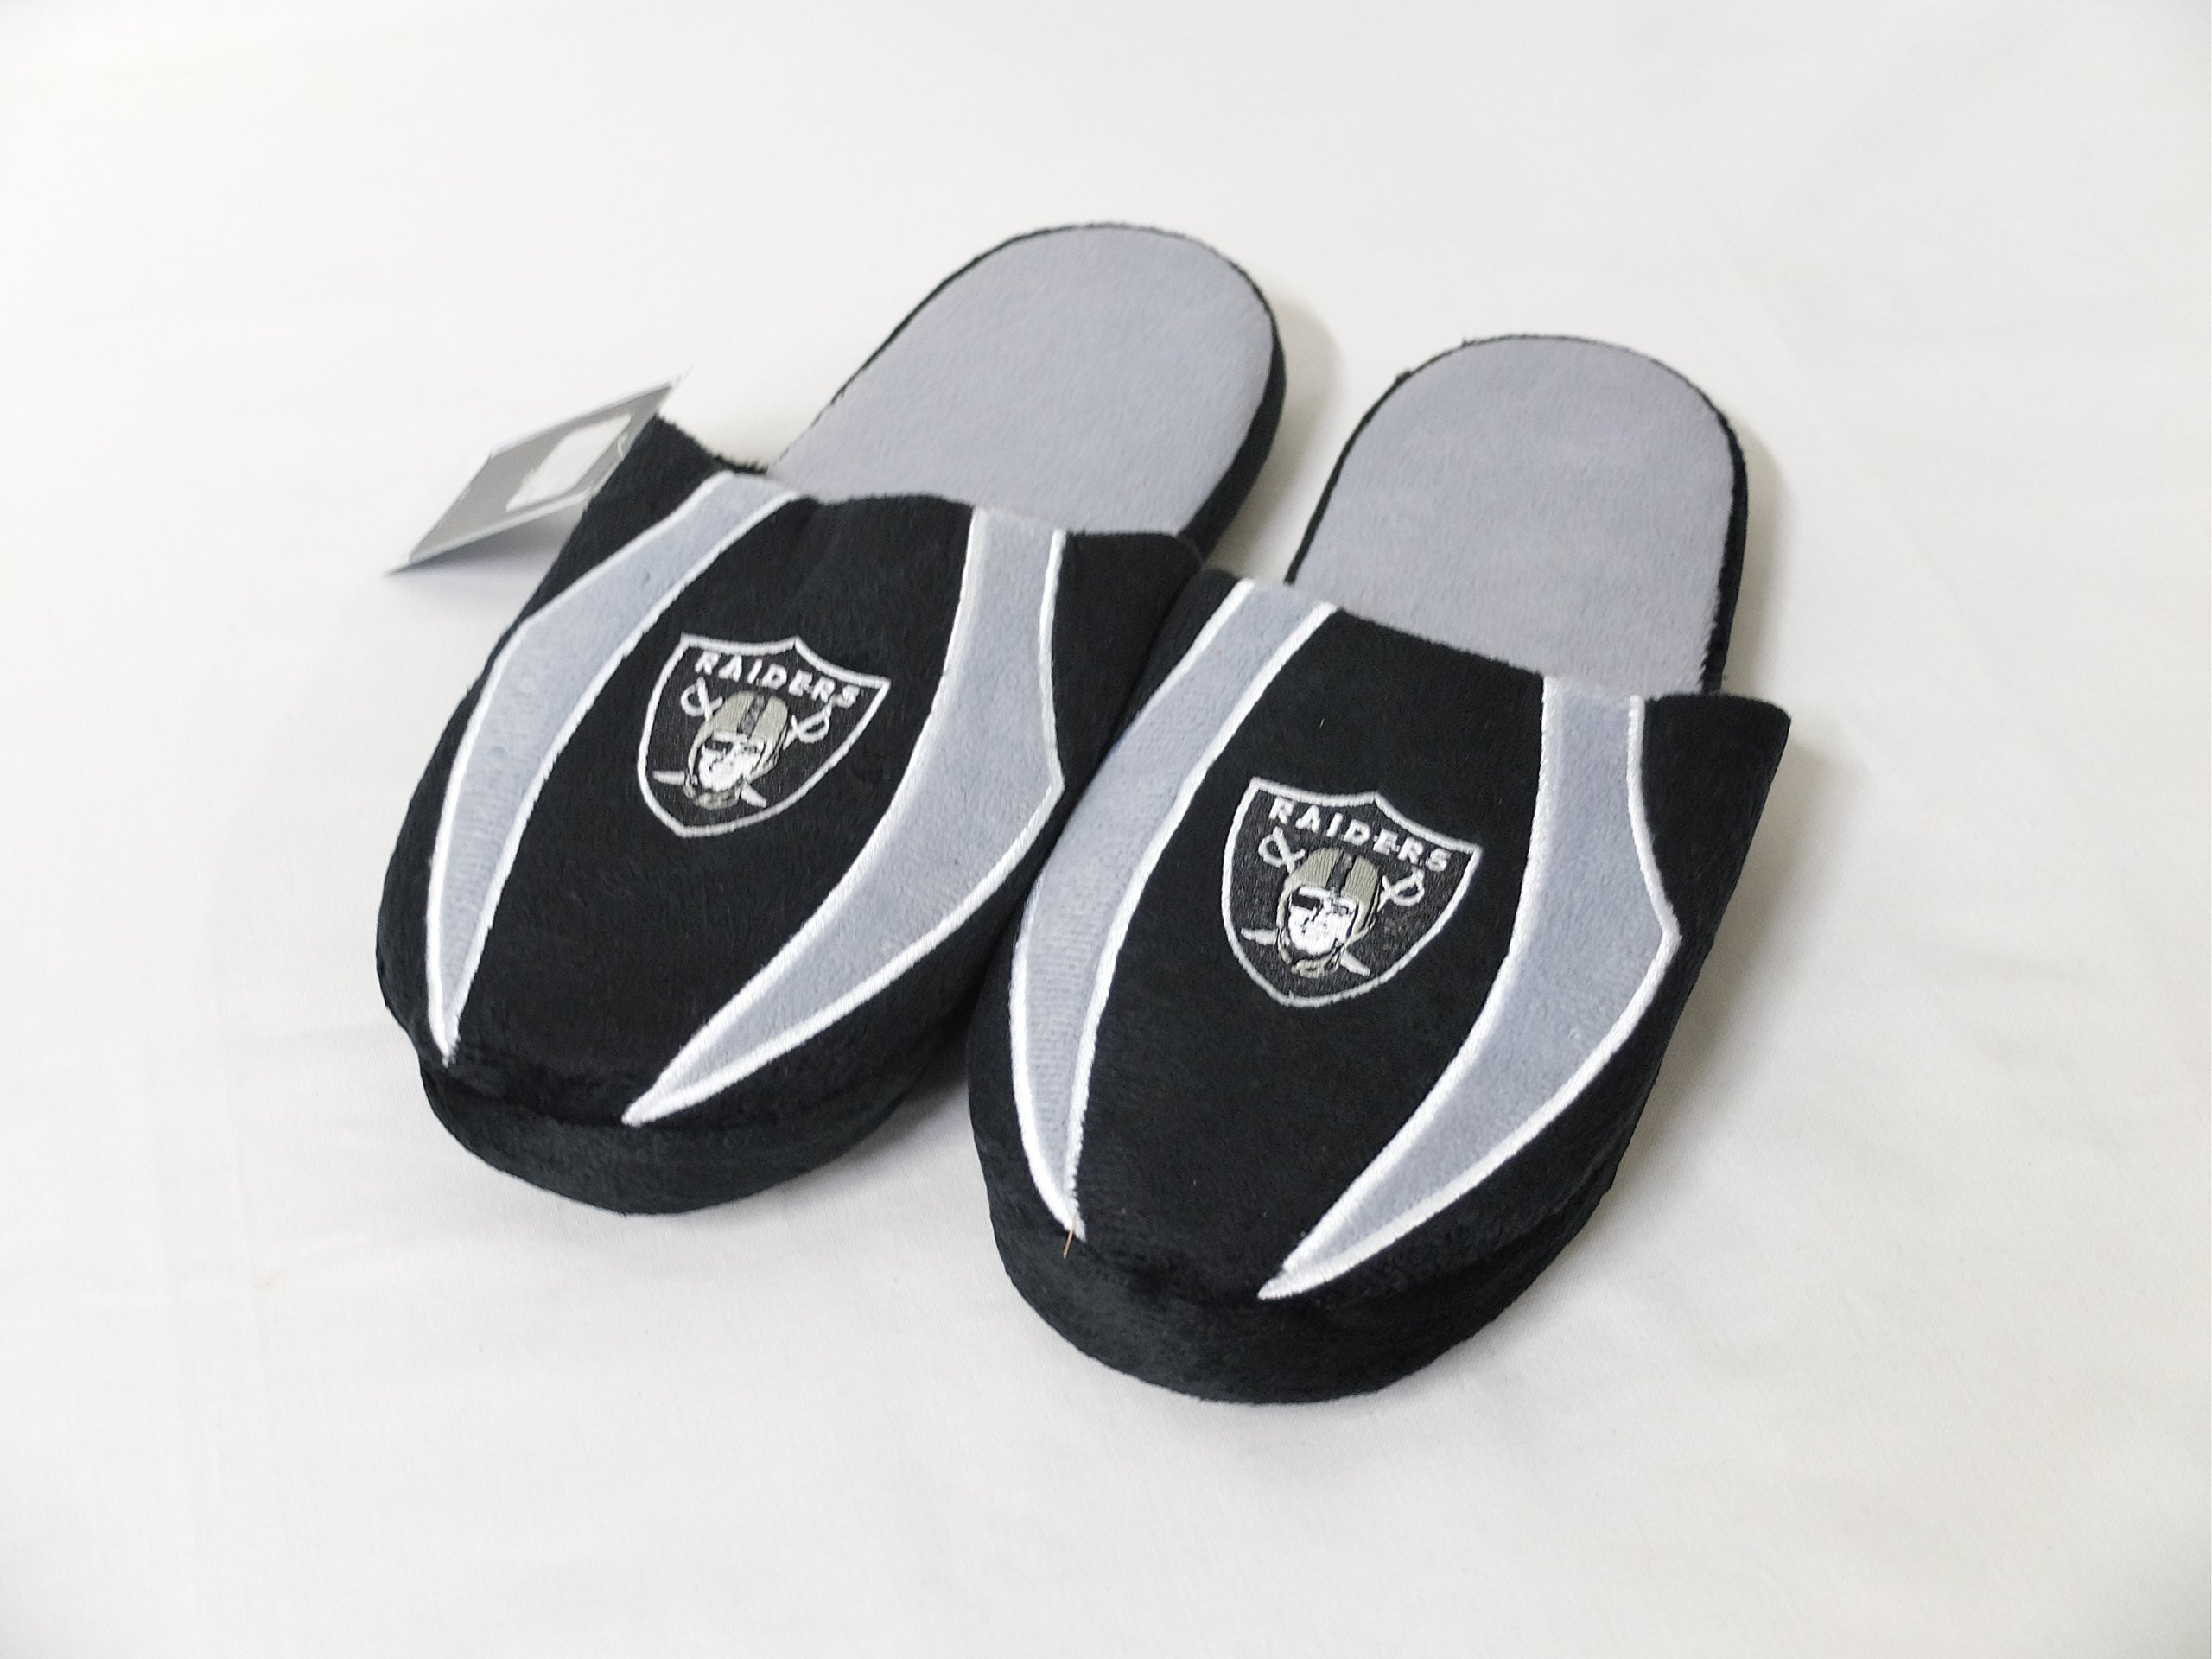 9a9246667aec Buy Oakland Raiders Mens NFL Sneaker Slippers in Cheap Price on ...